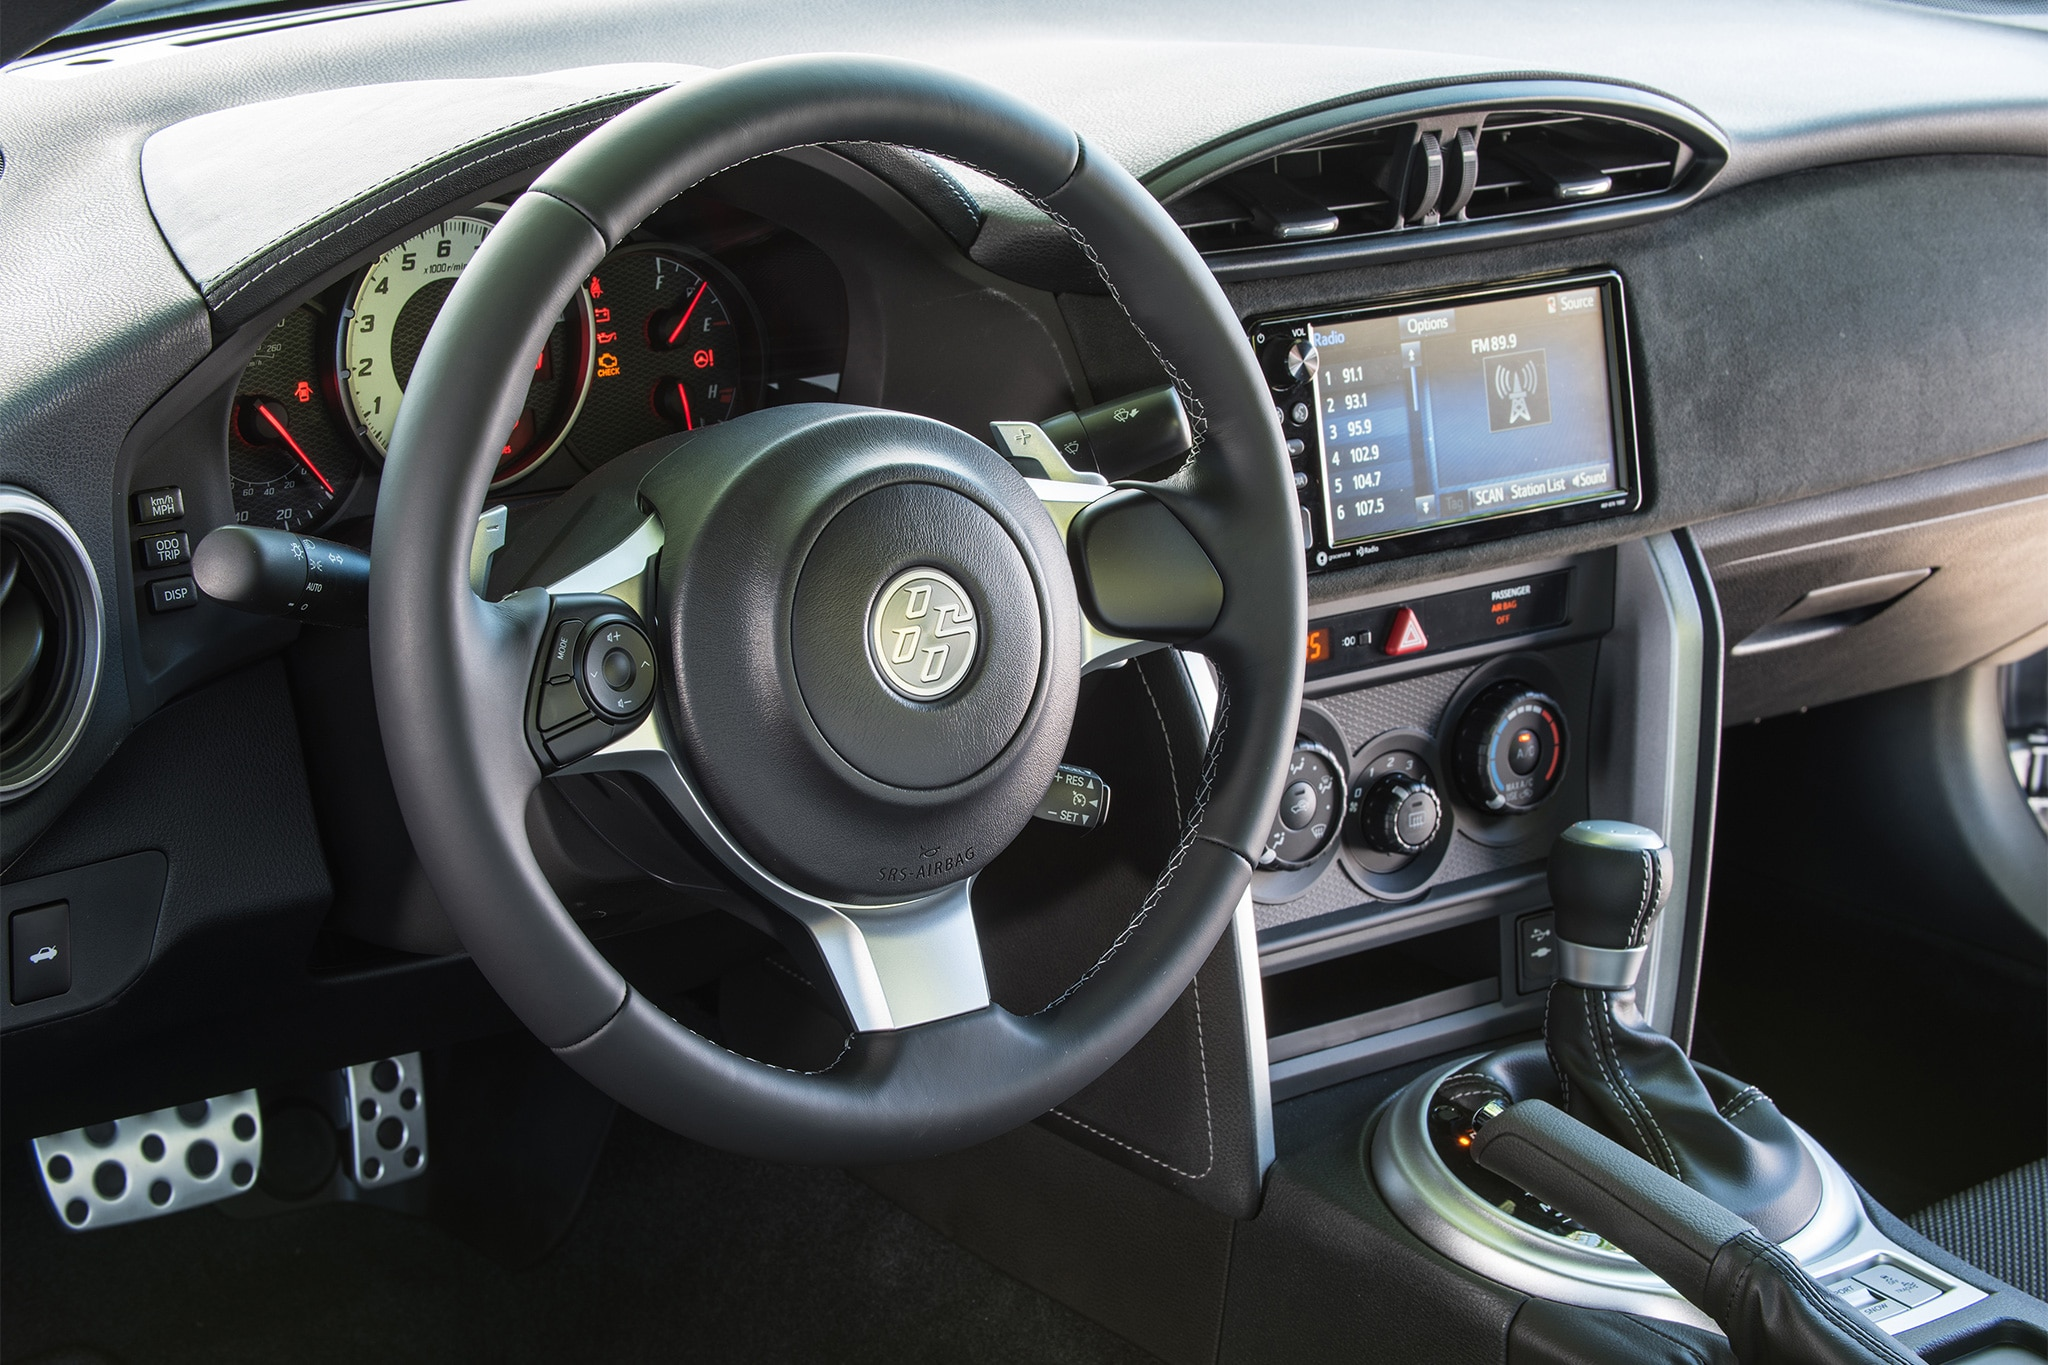 2017 Toyota 86 steering wheel and center stack